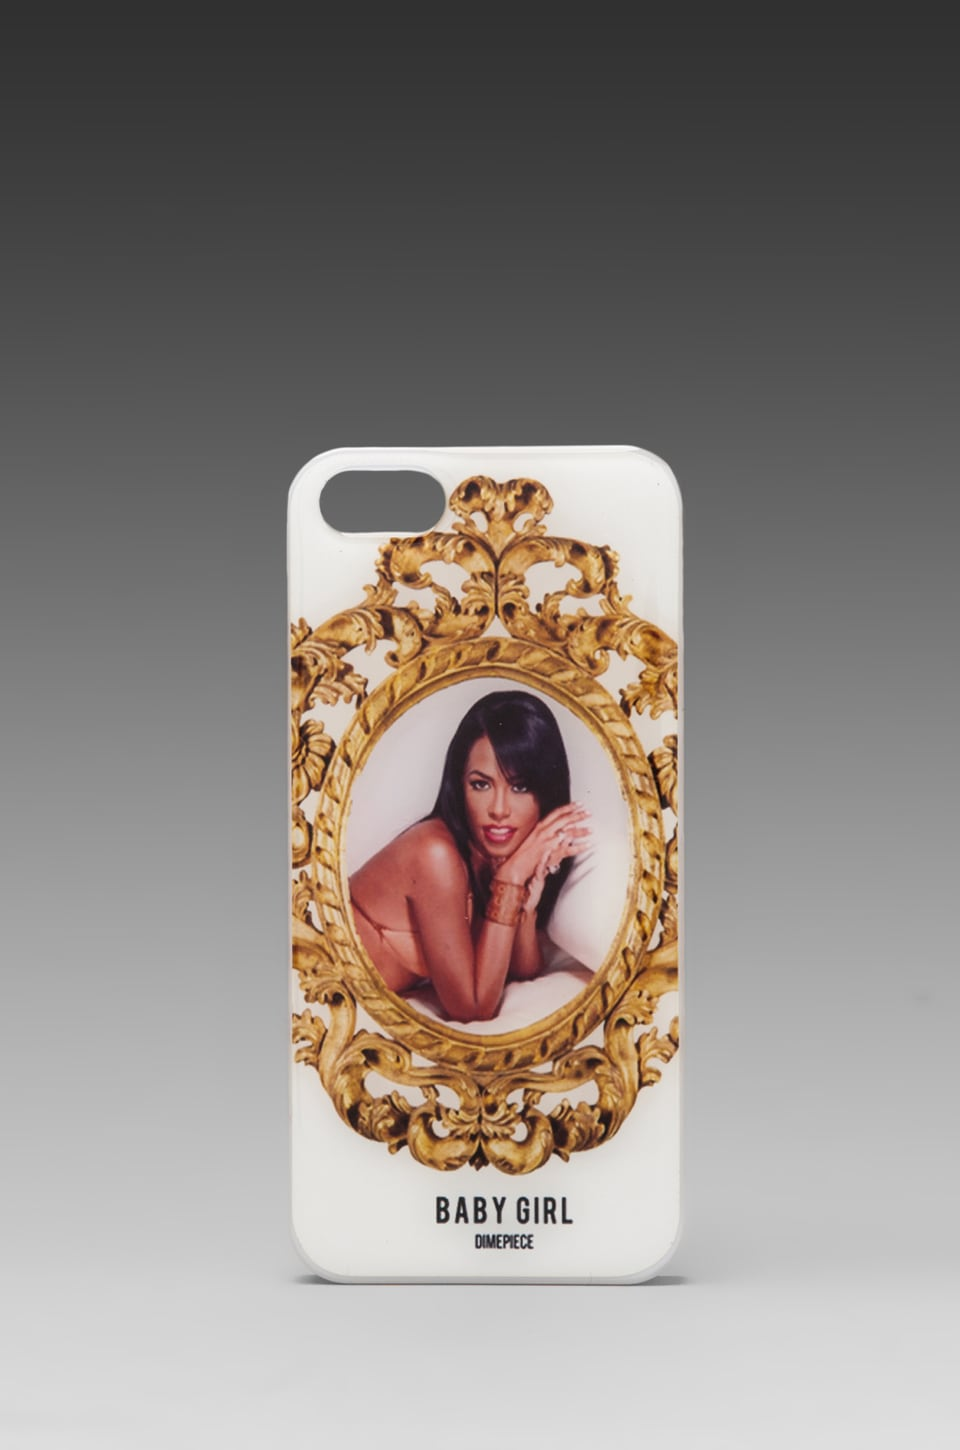 Dimepiece Baby Girl Iphone 5 Case in White